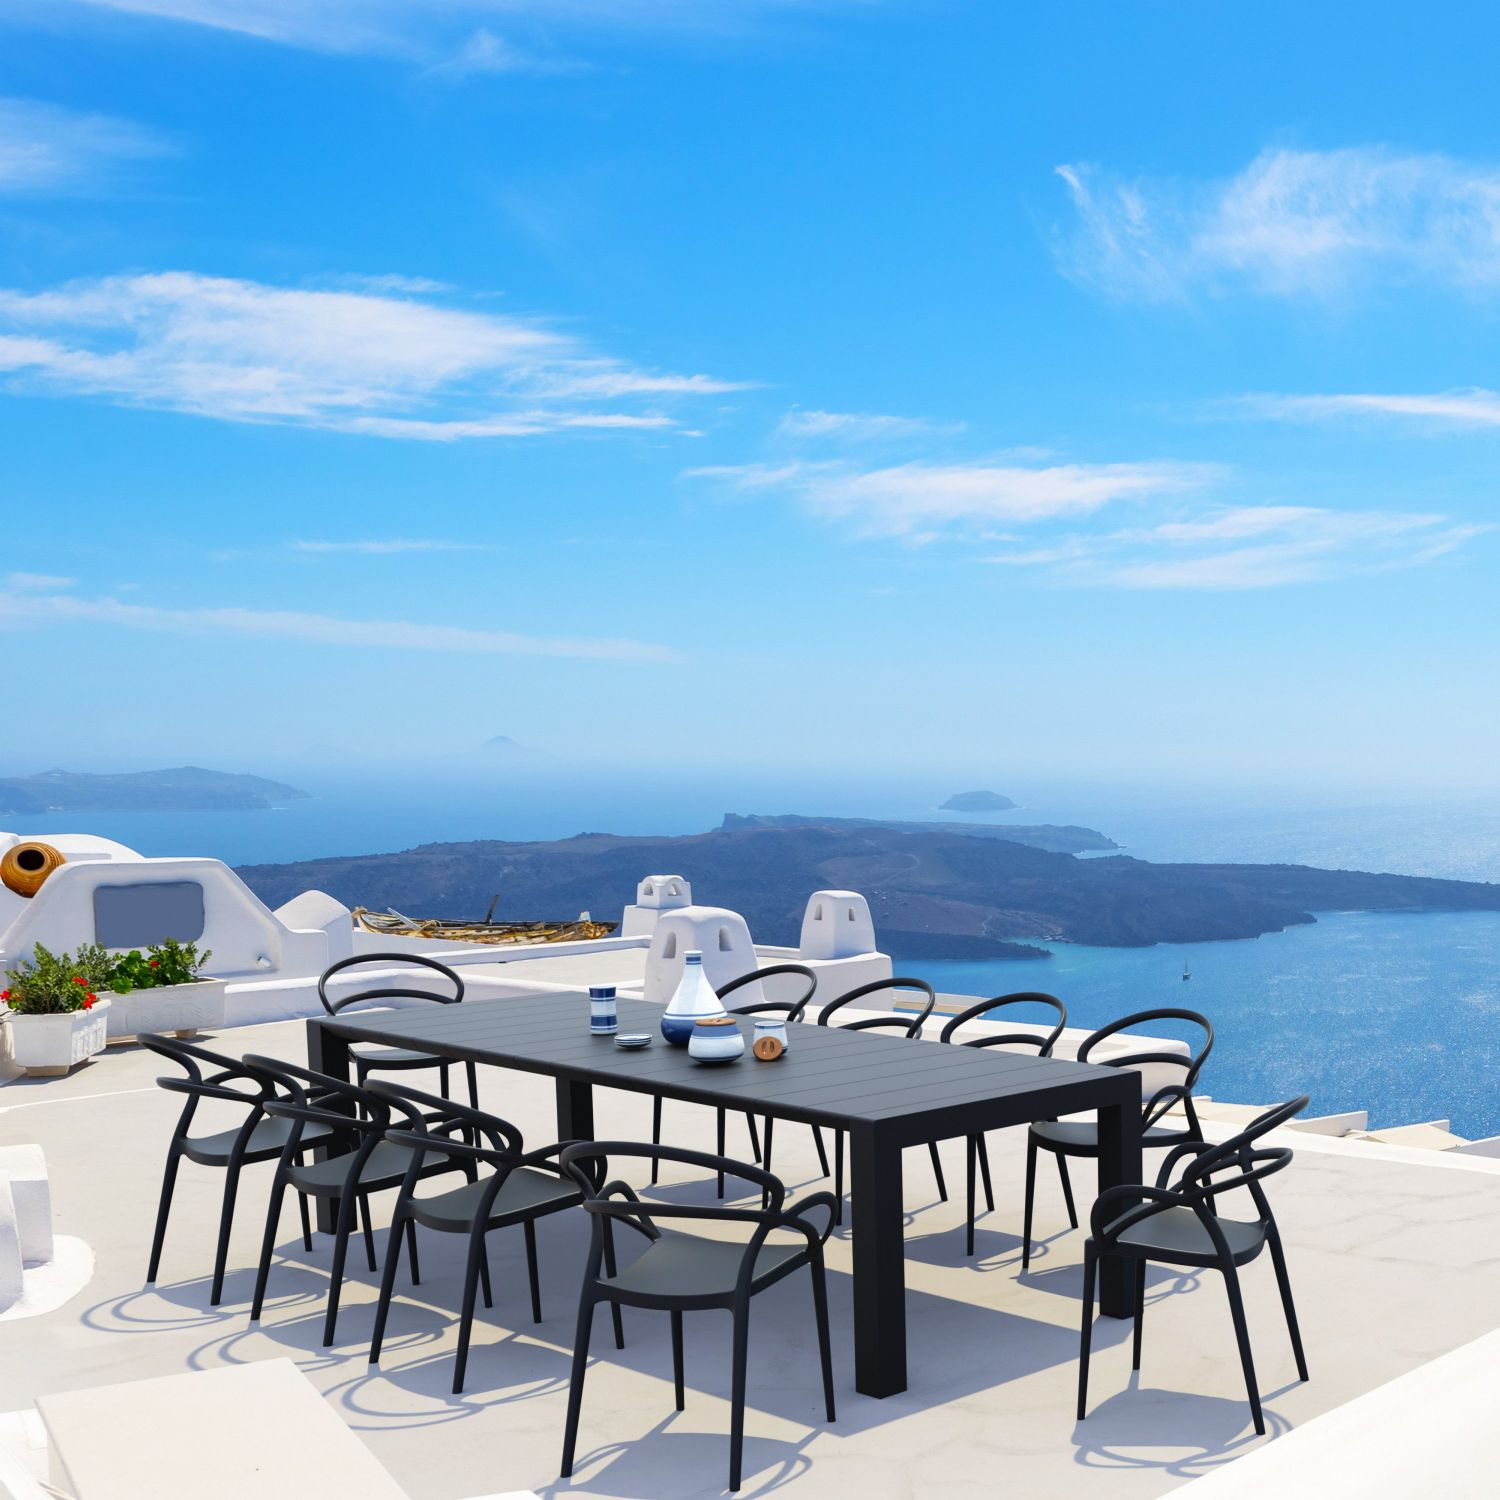 Mila Extendable Outdoor Dining Set 11 piece White ISP0851S-WHI - 1